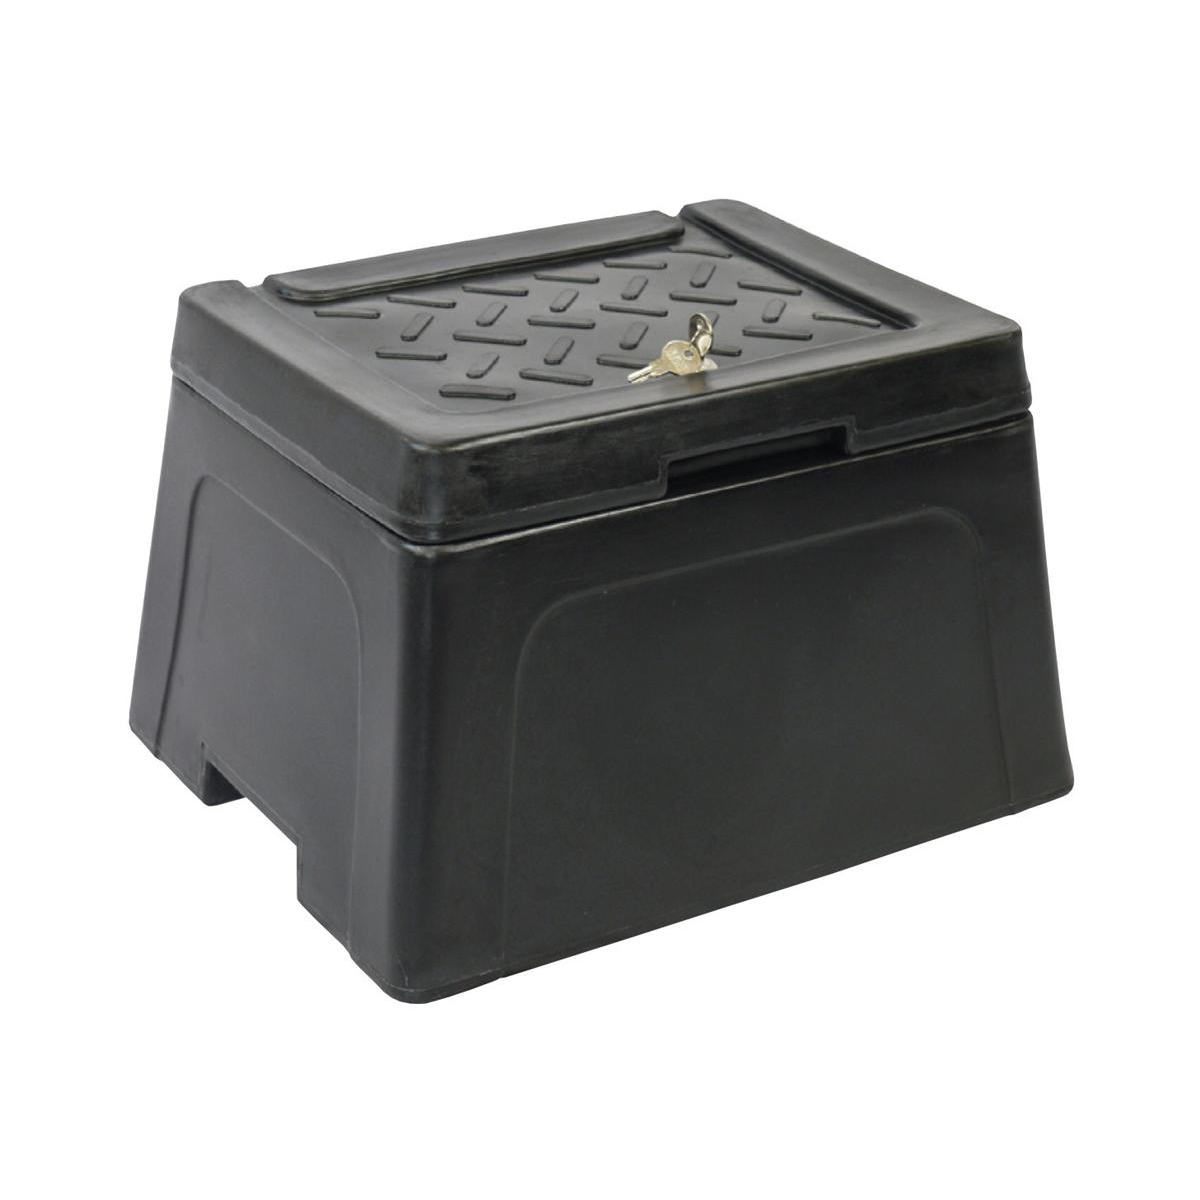 Grit Bins & Accessories Mini Grit Bin Lockable with Scoop